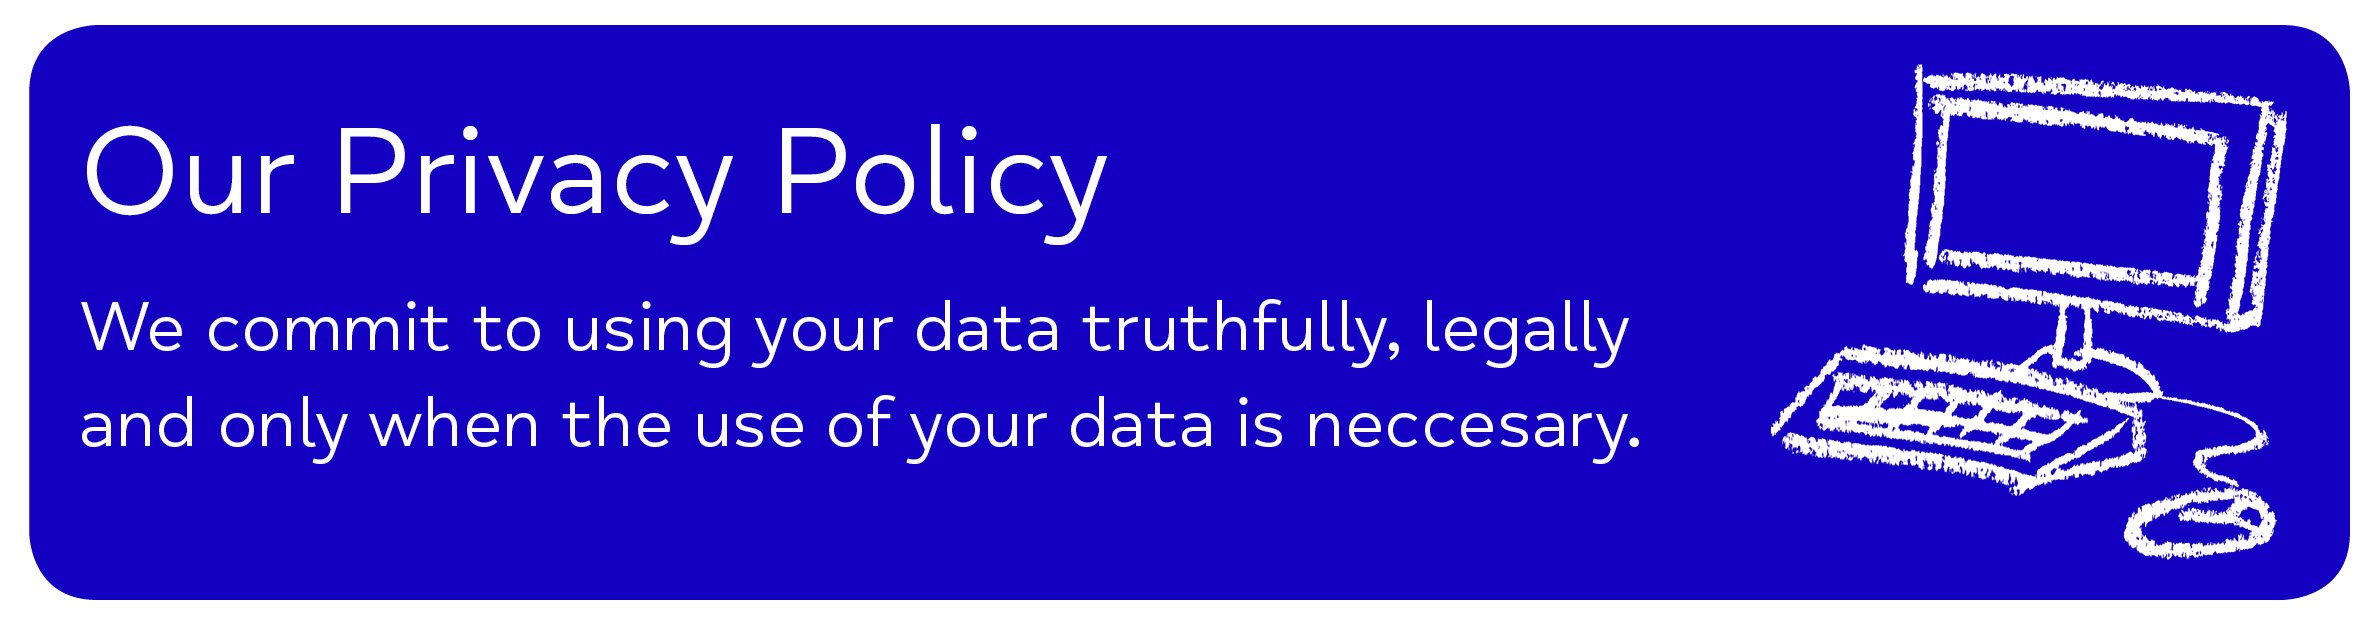 Mid Kent Mind - Our Privacy Policy We commit to using your data truthfully, legally                     and only when the use of your data is neccesary.